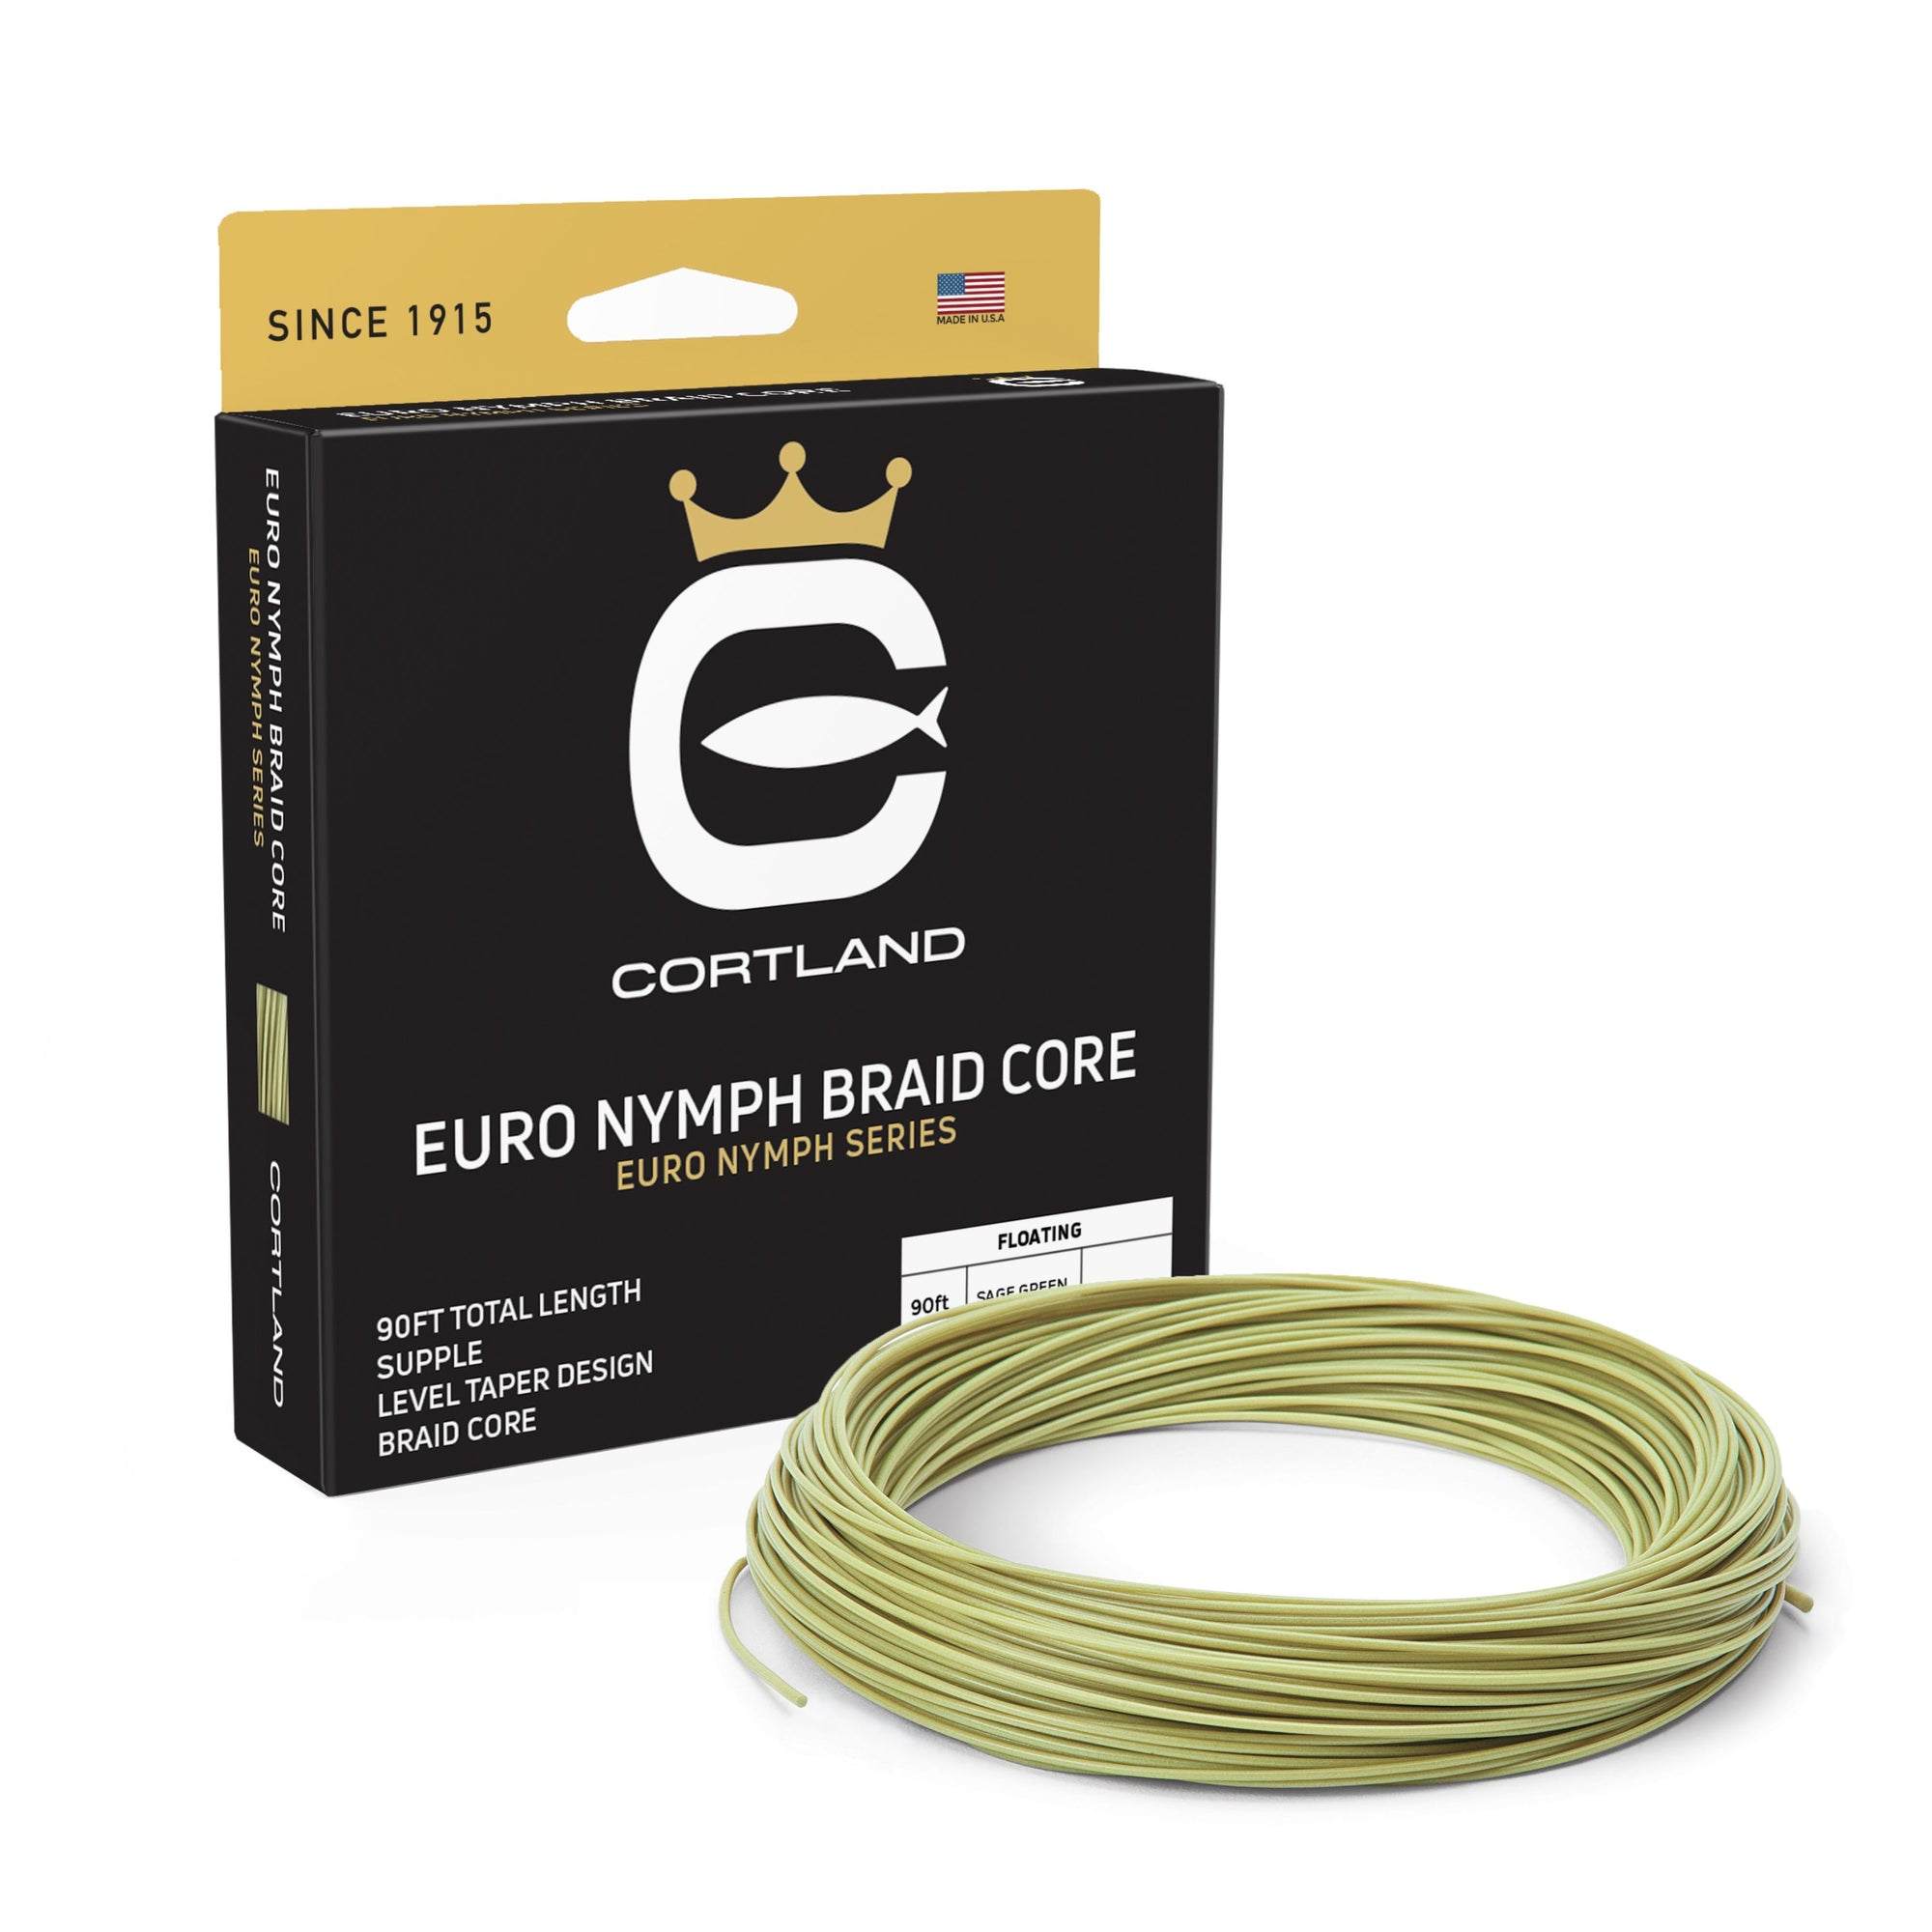 Cortland Euro Nymph Braid Core